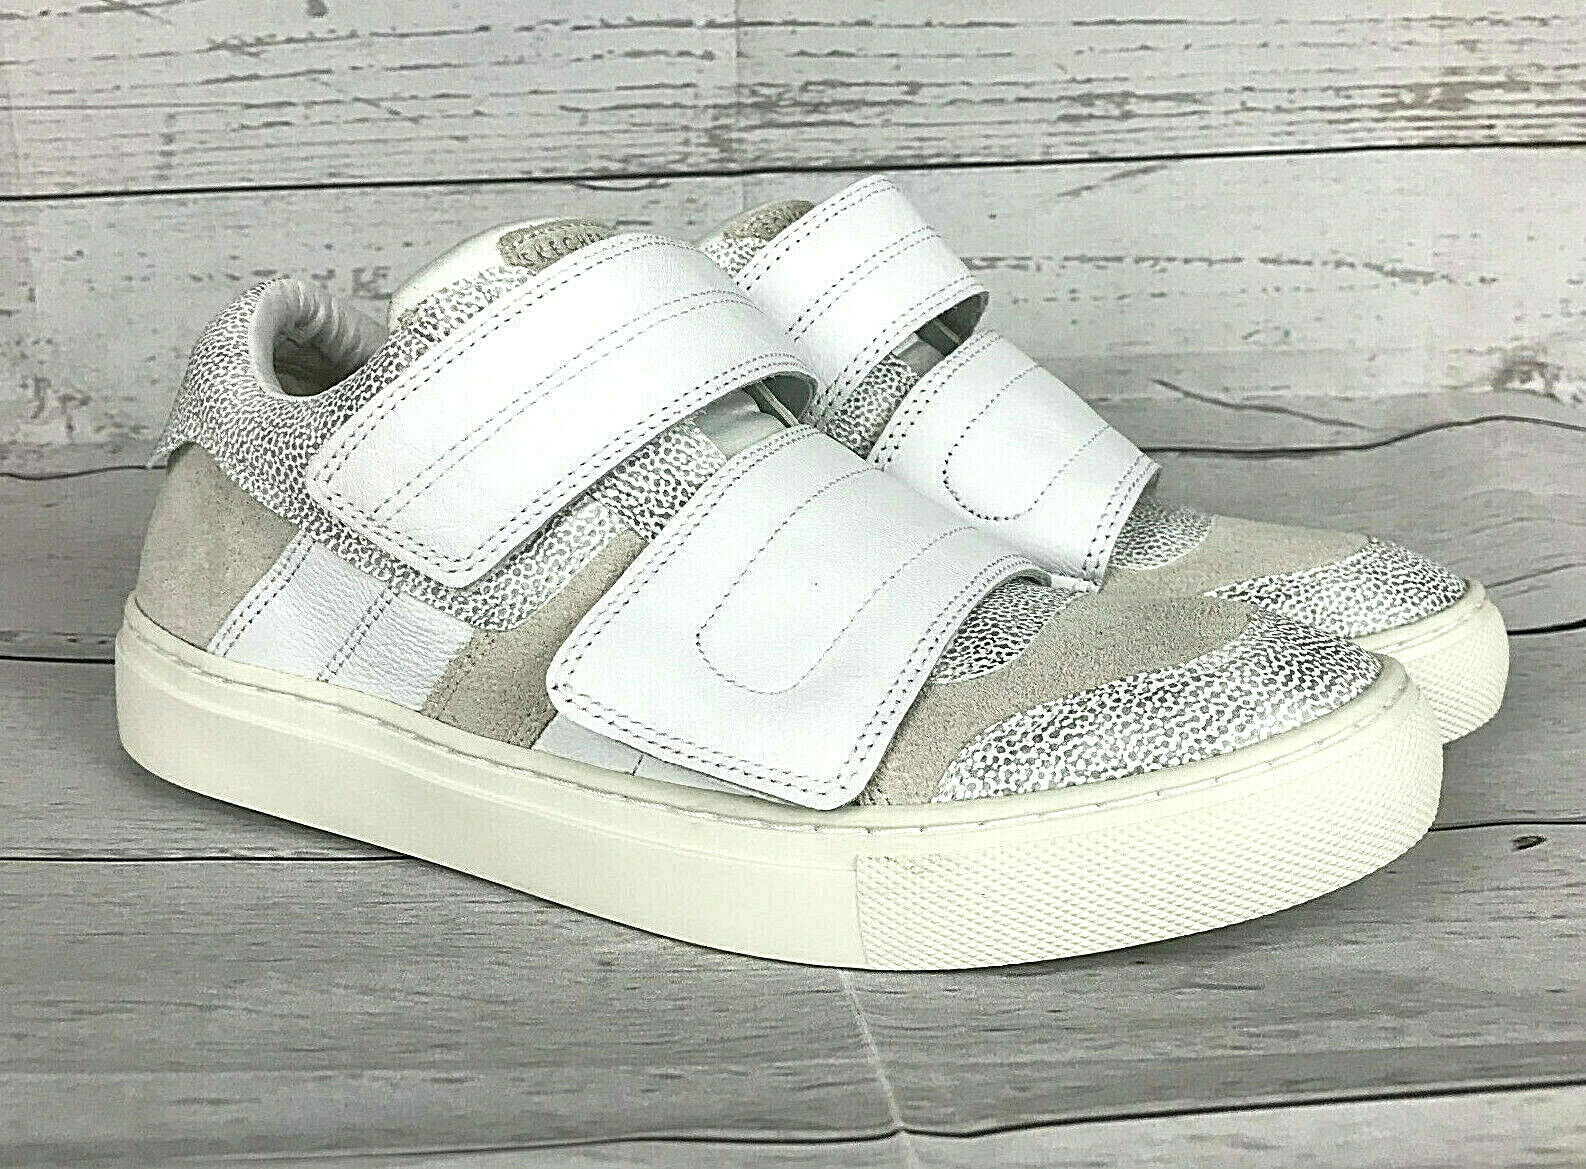 Skechers Street Smooth Over damen 7 ivory leather double strap rise fit Turnschuhe